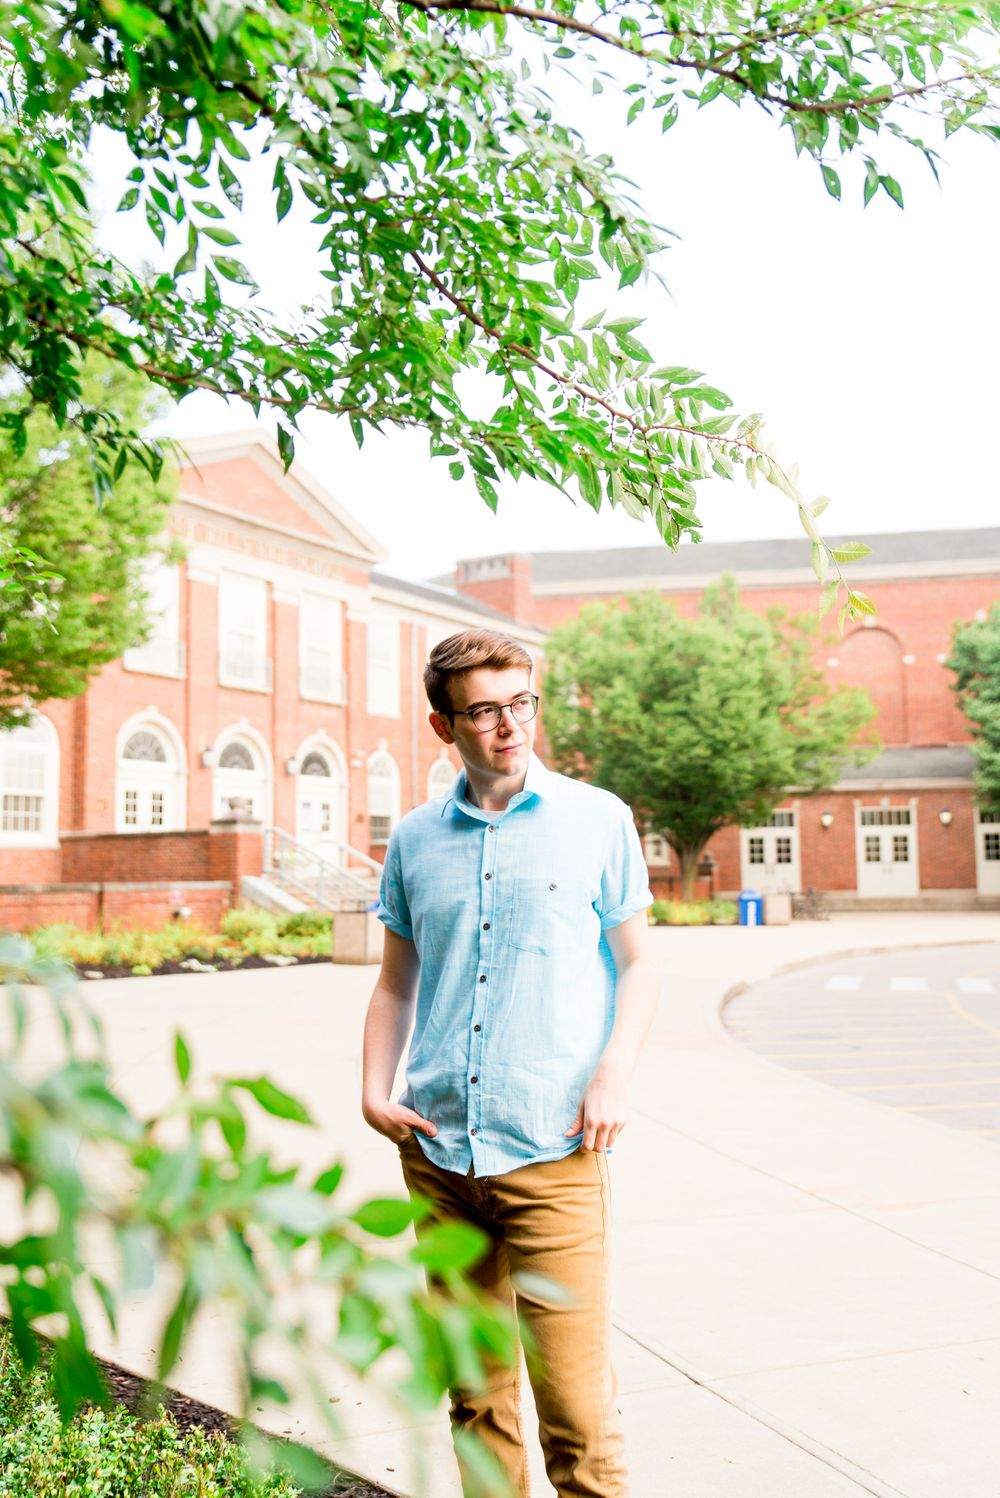 High School senior boy in blue shirt and khaki pants wearing glasses outside looking to the right by a tree